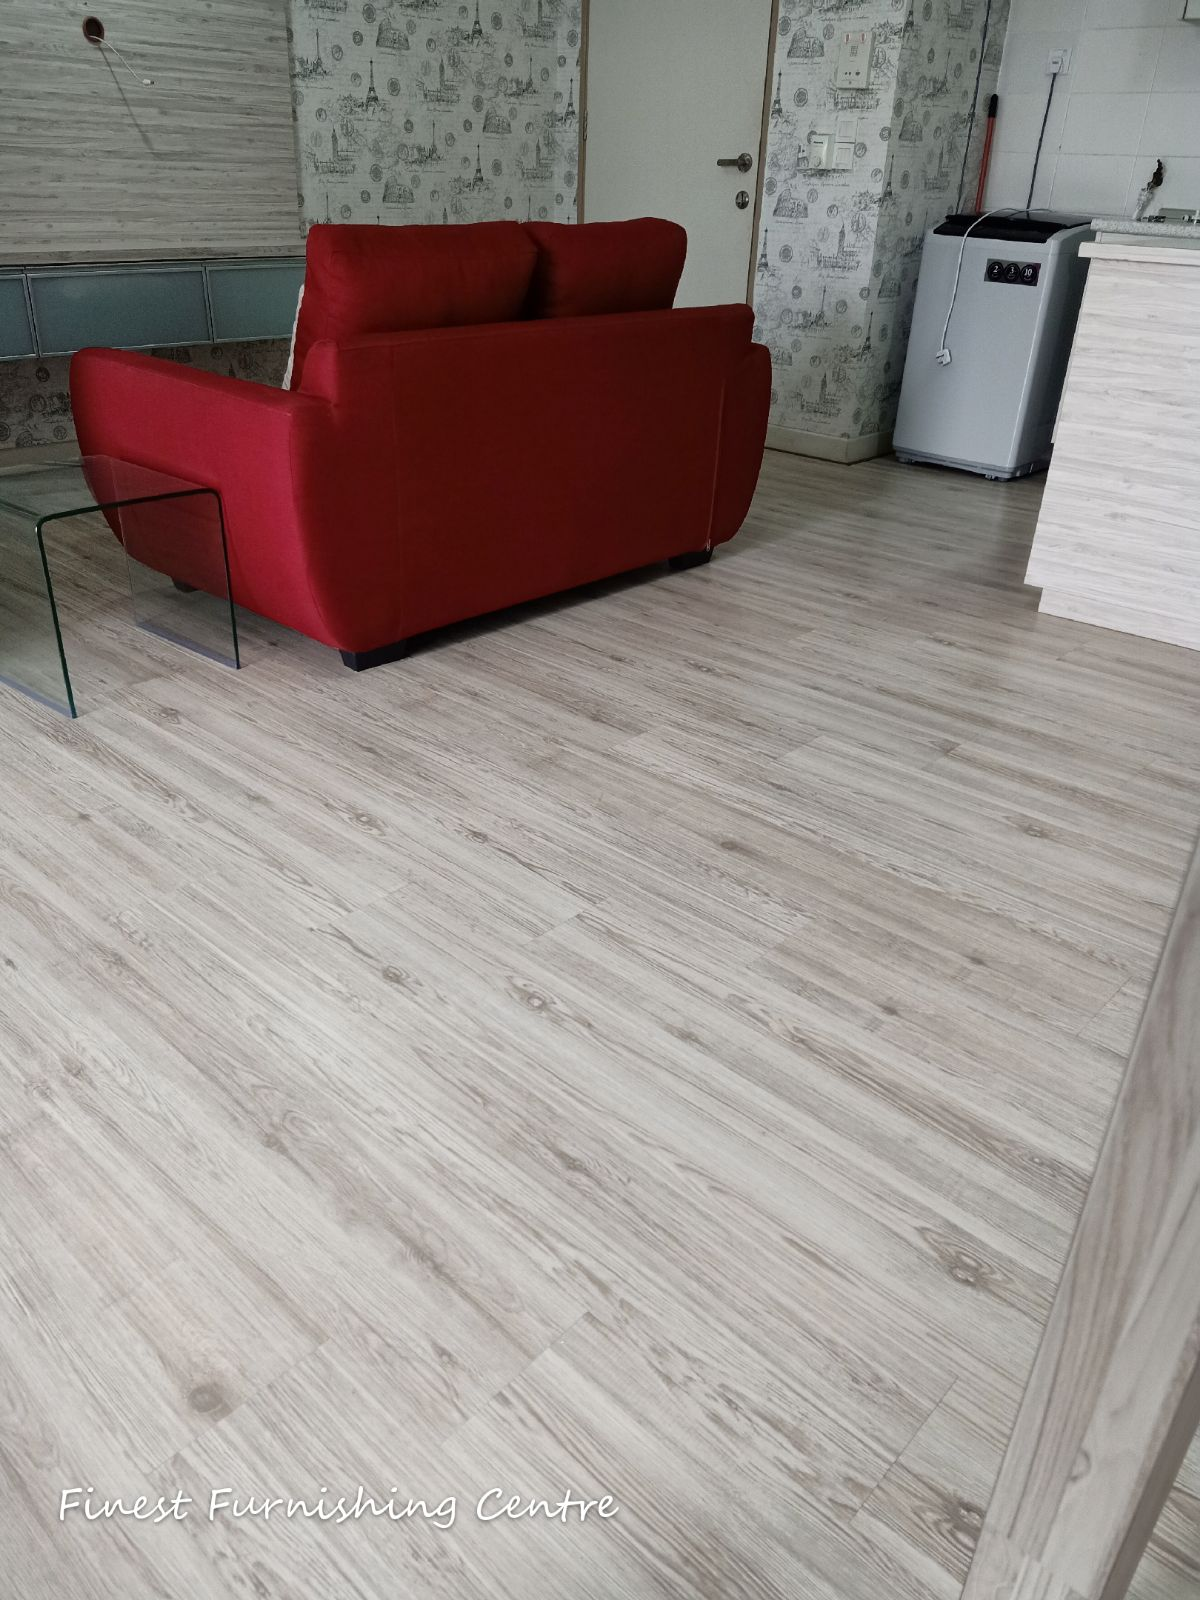 Wood Laminate -Greenfield Regency, jb